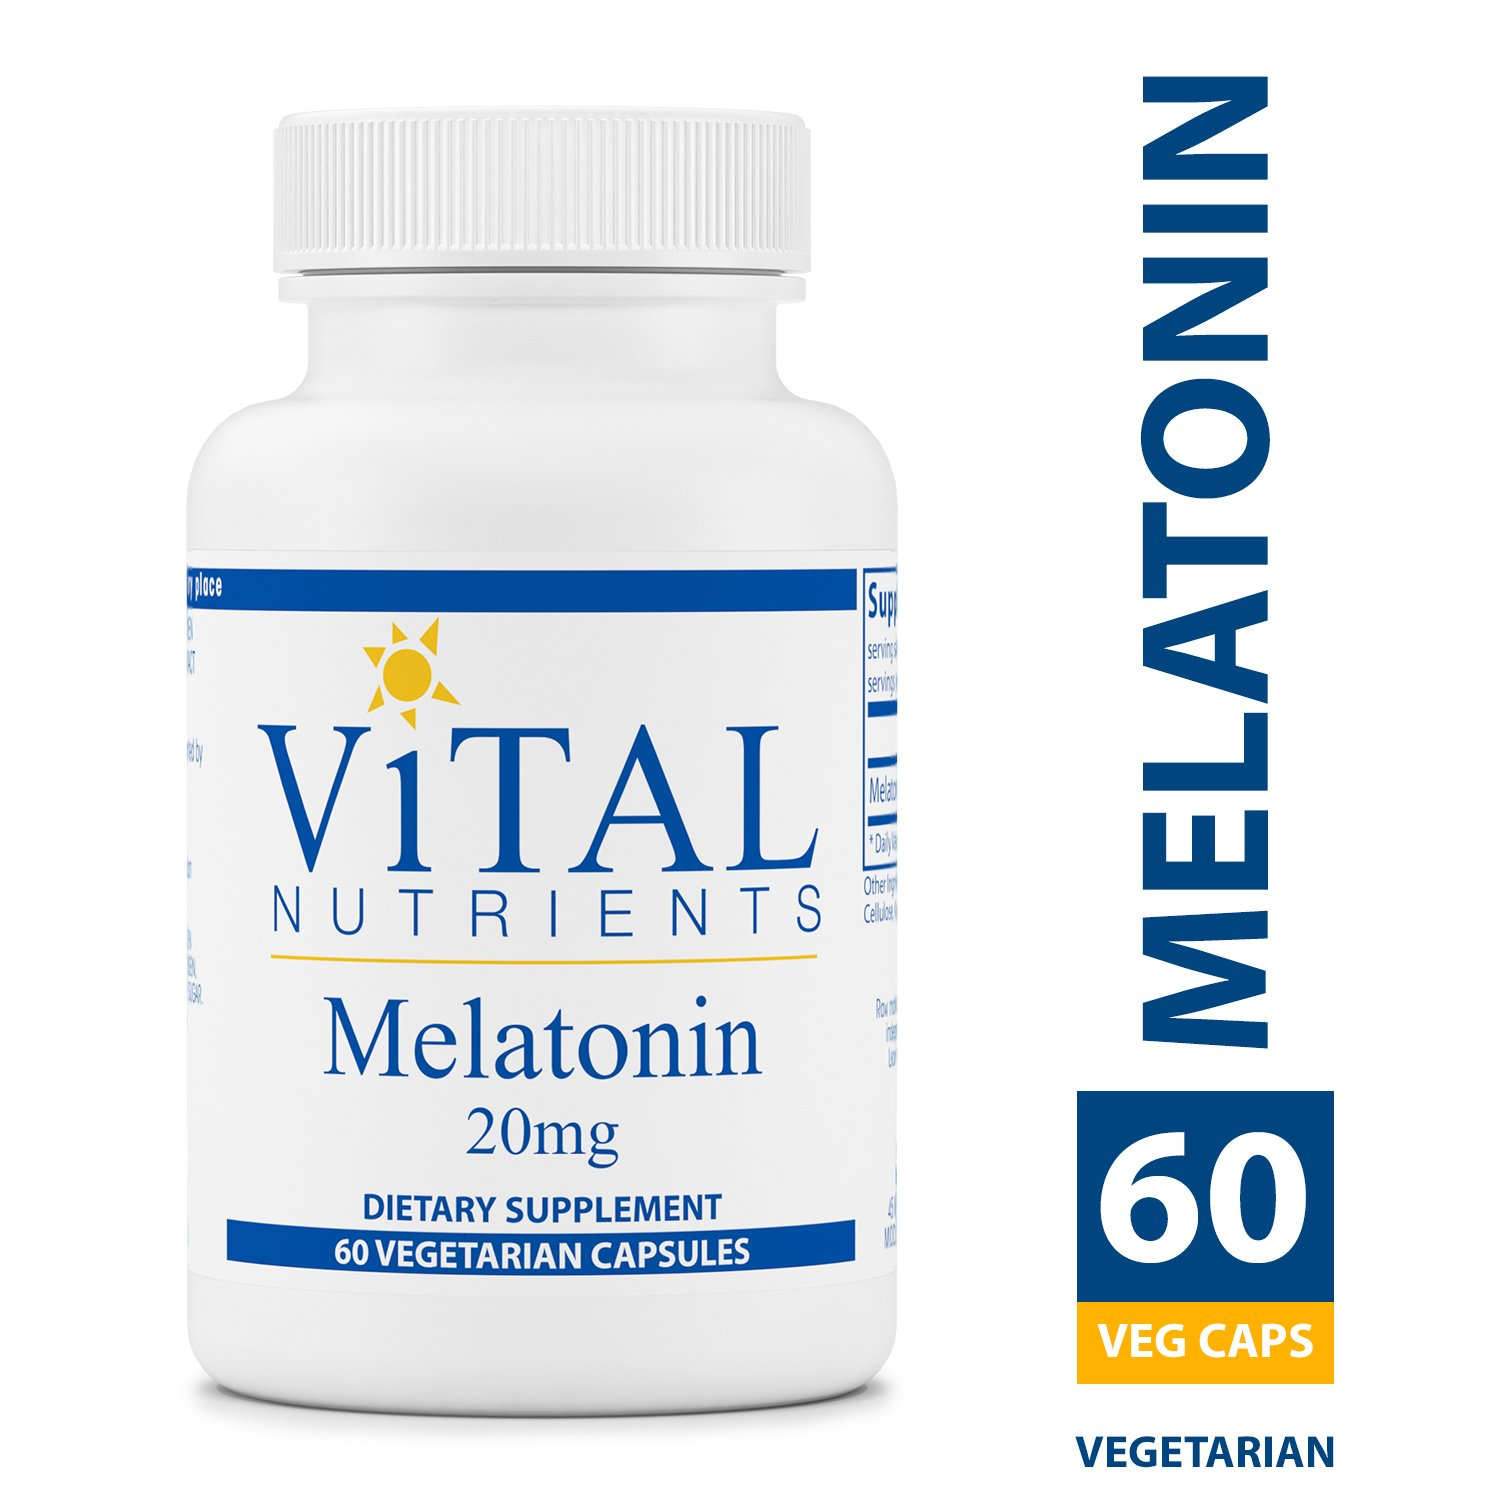 Vital Nutrients - Melatonin 20 mg - Supports the Body's Natural Sleep Cycle - 60 Capsules per Bottle by Vital Nutrients